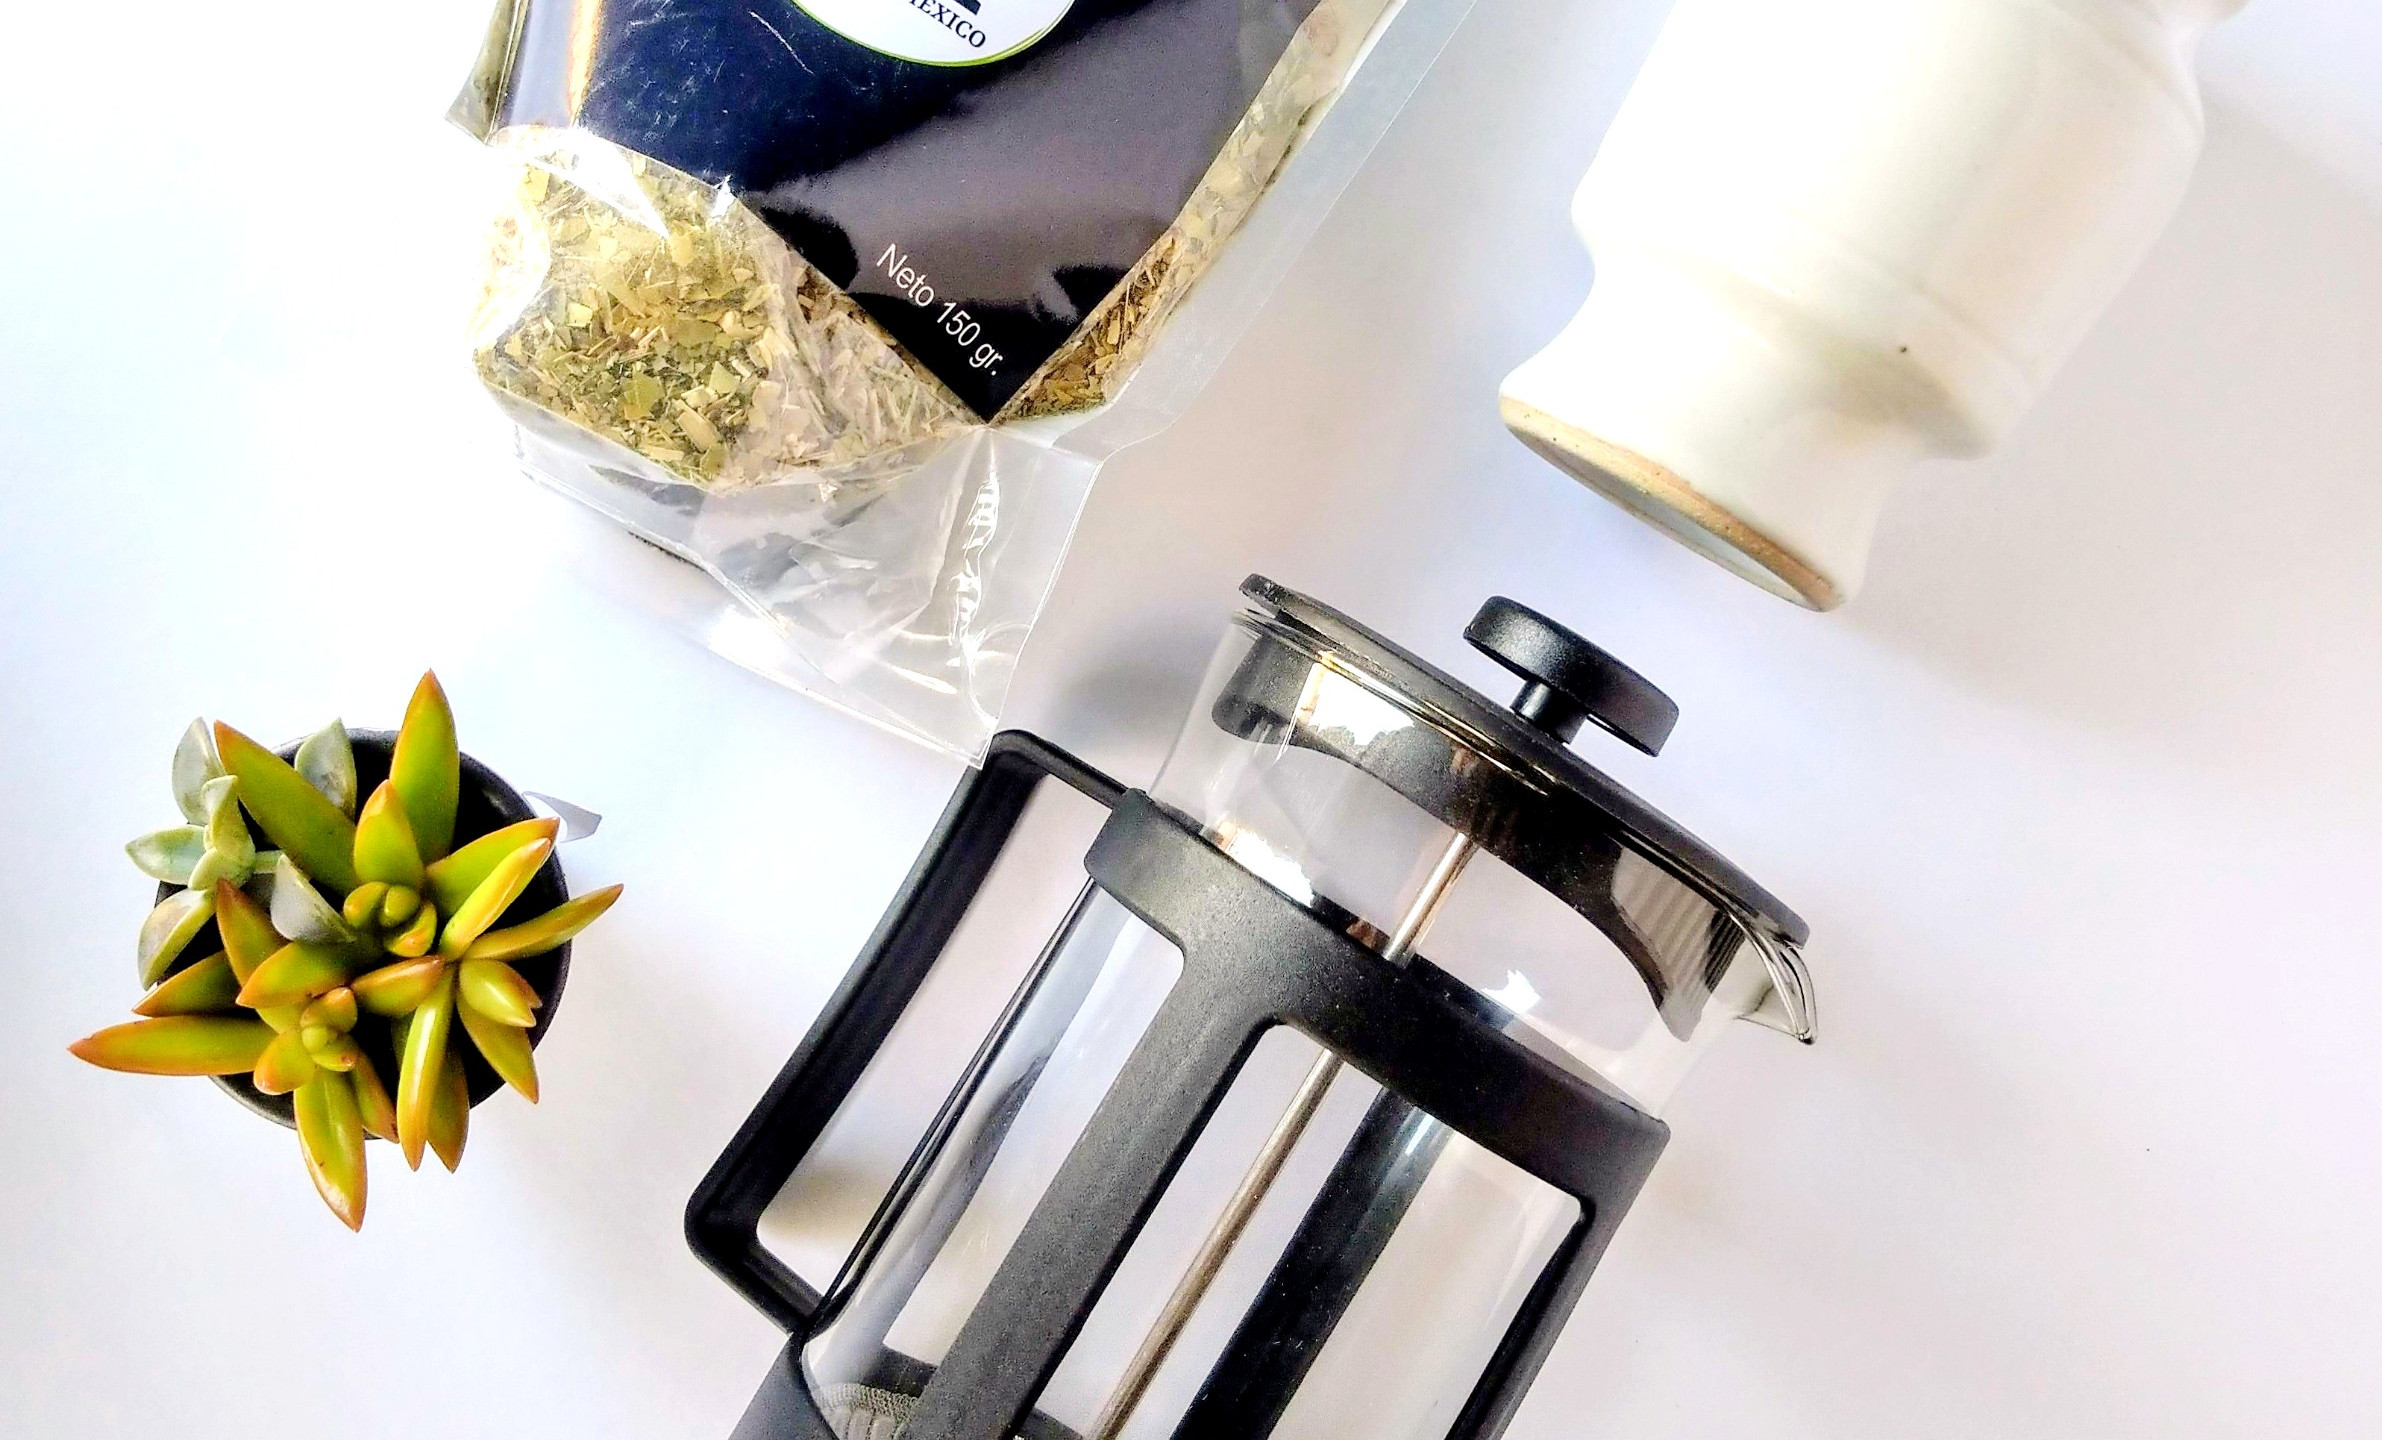 MATE COCIDO EN FRENCH PRESS